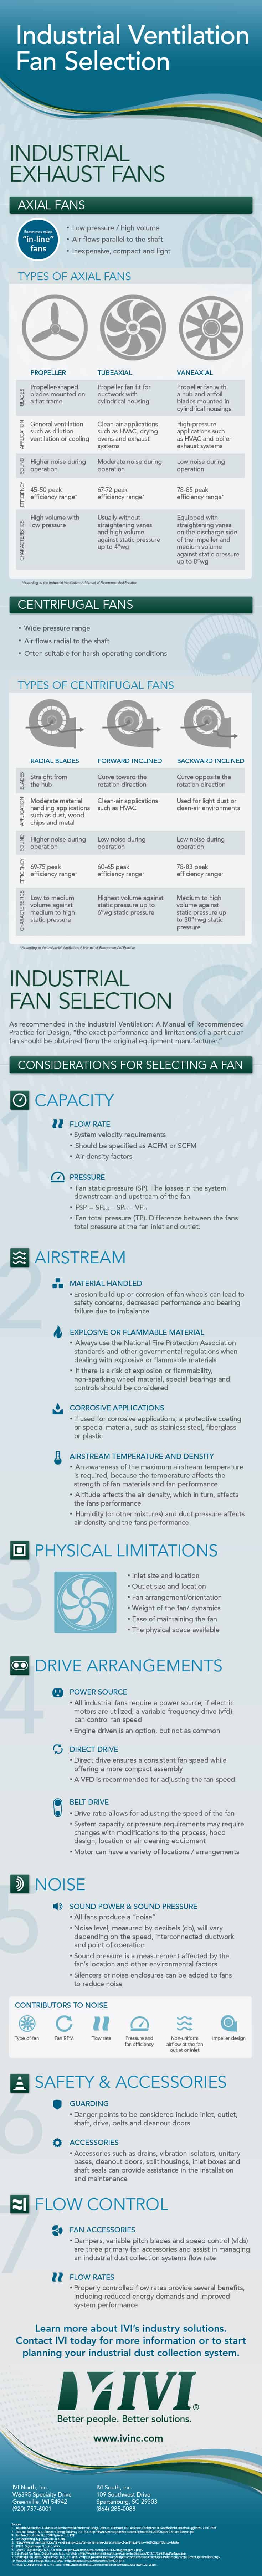 Industrial Ventilation Systems Fan Selection – Part 2